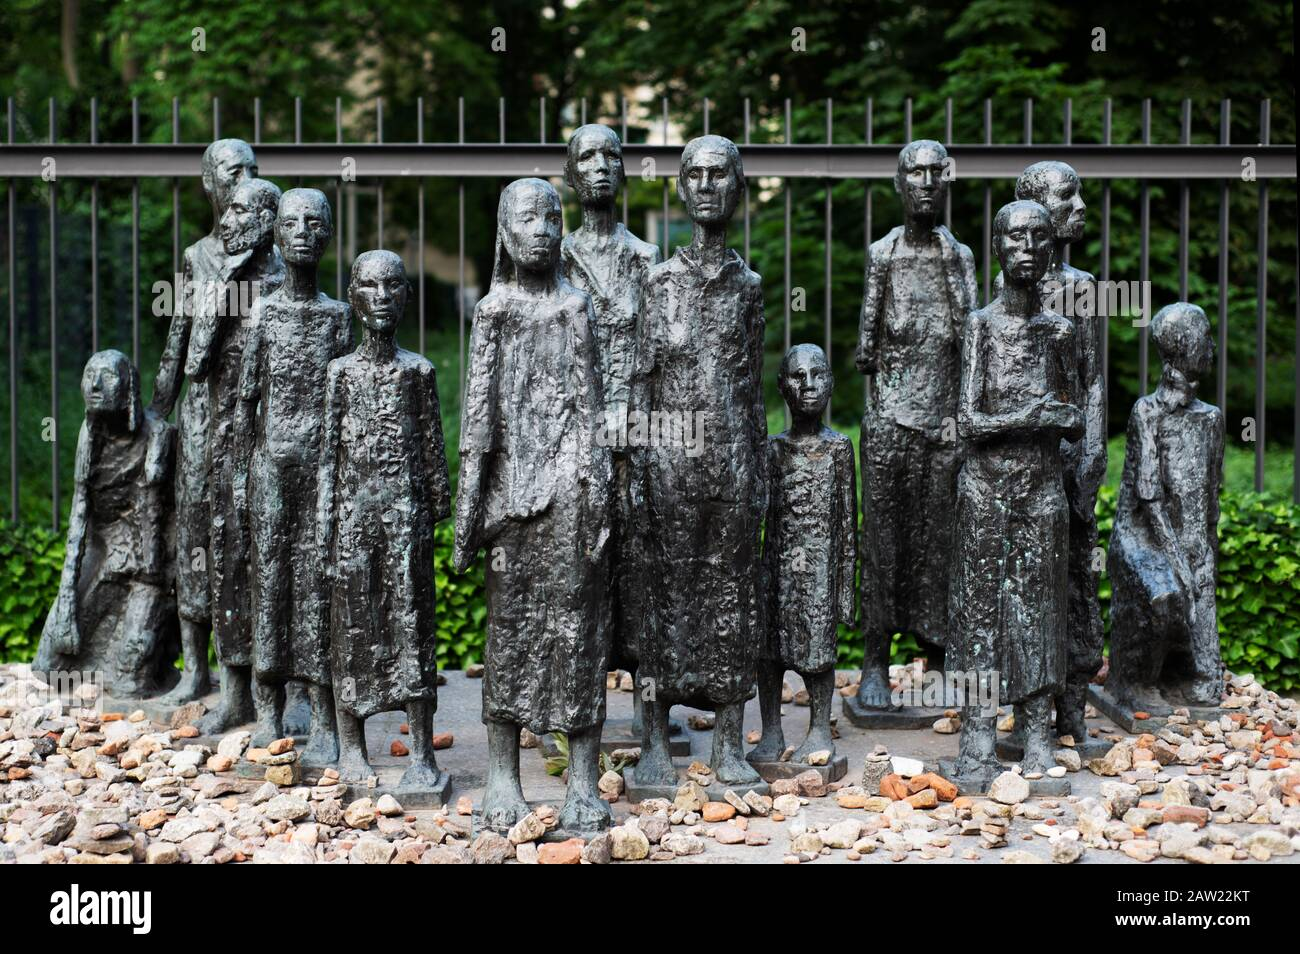 BERLIN, GERMANY - MAY 27, 2018: A view of the sculptural group Judische Opfer des Faschismus, at the Memorial Jewish Cemetery in Berlin, Germany, as a Stock Photo